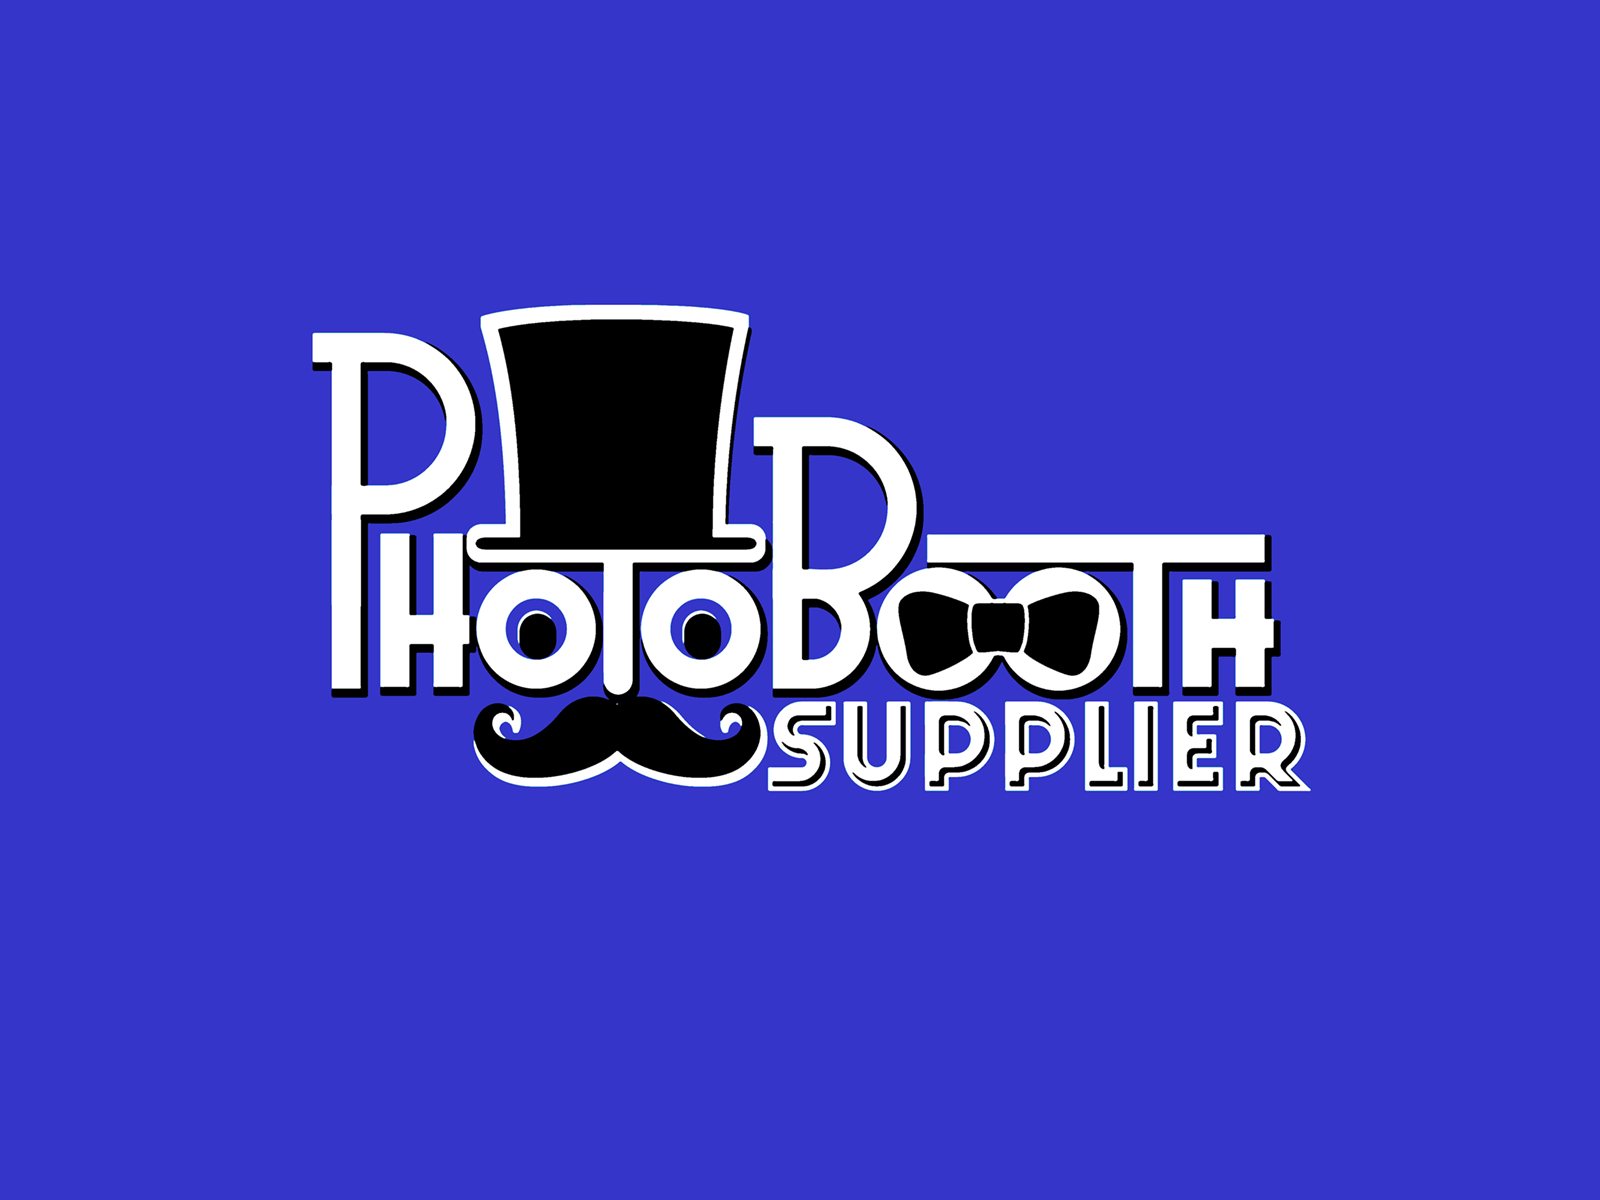 Photobooth supplier in 2020 Logos, Photo booth, Adidas logo